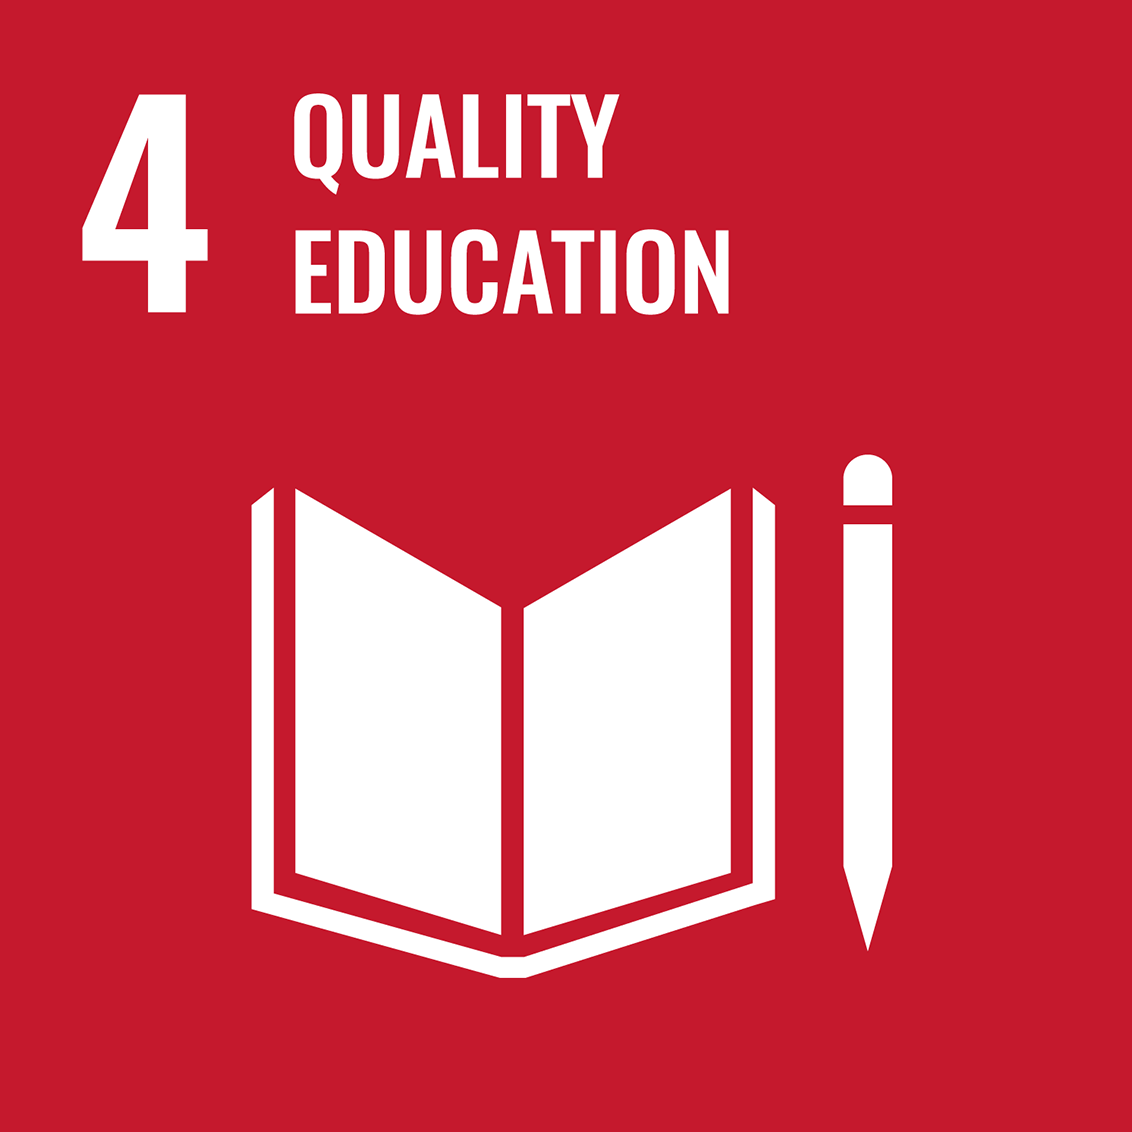 Icon for the UN Sustainable Development Goal 4